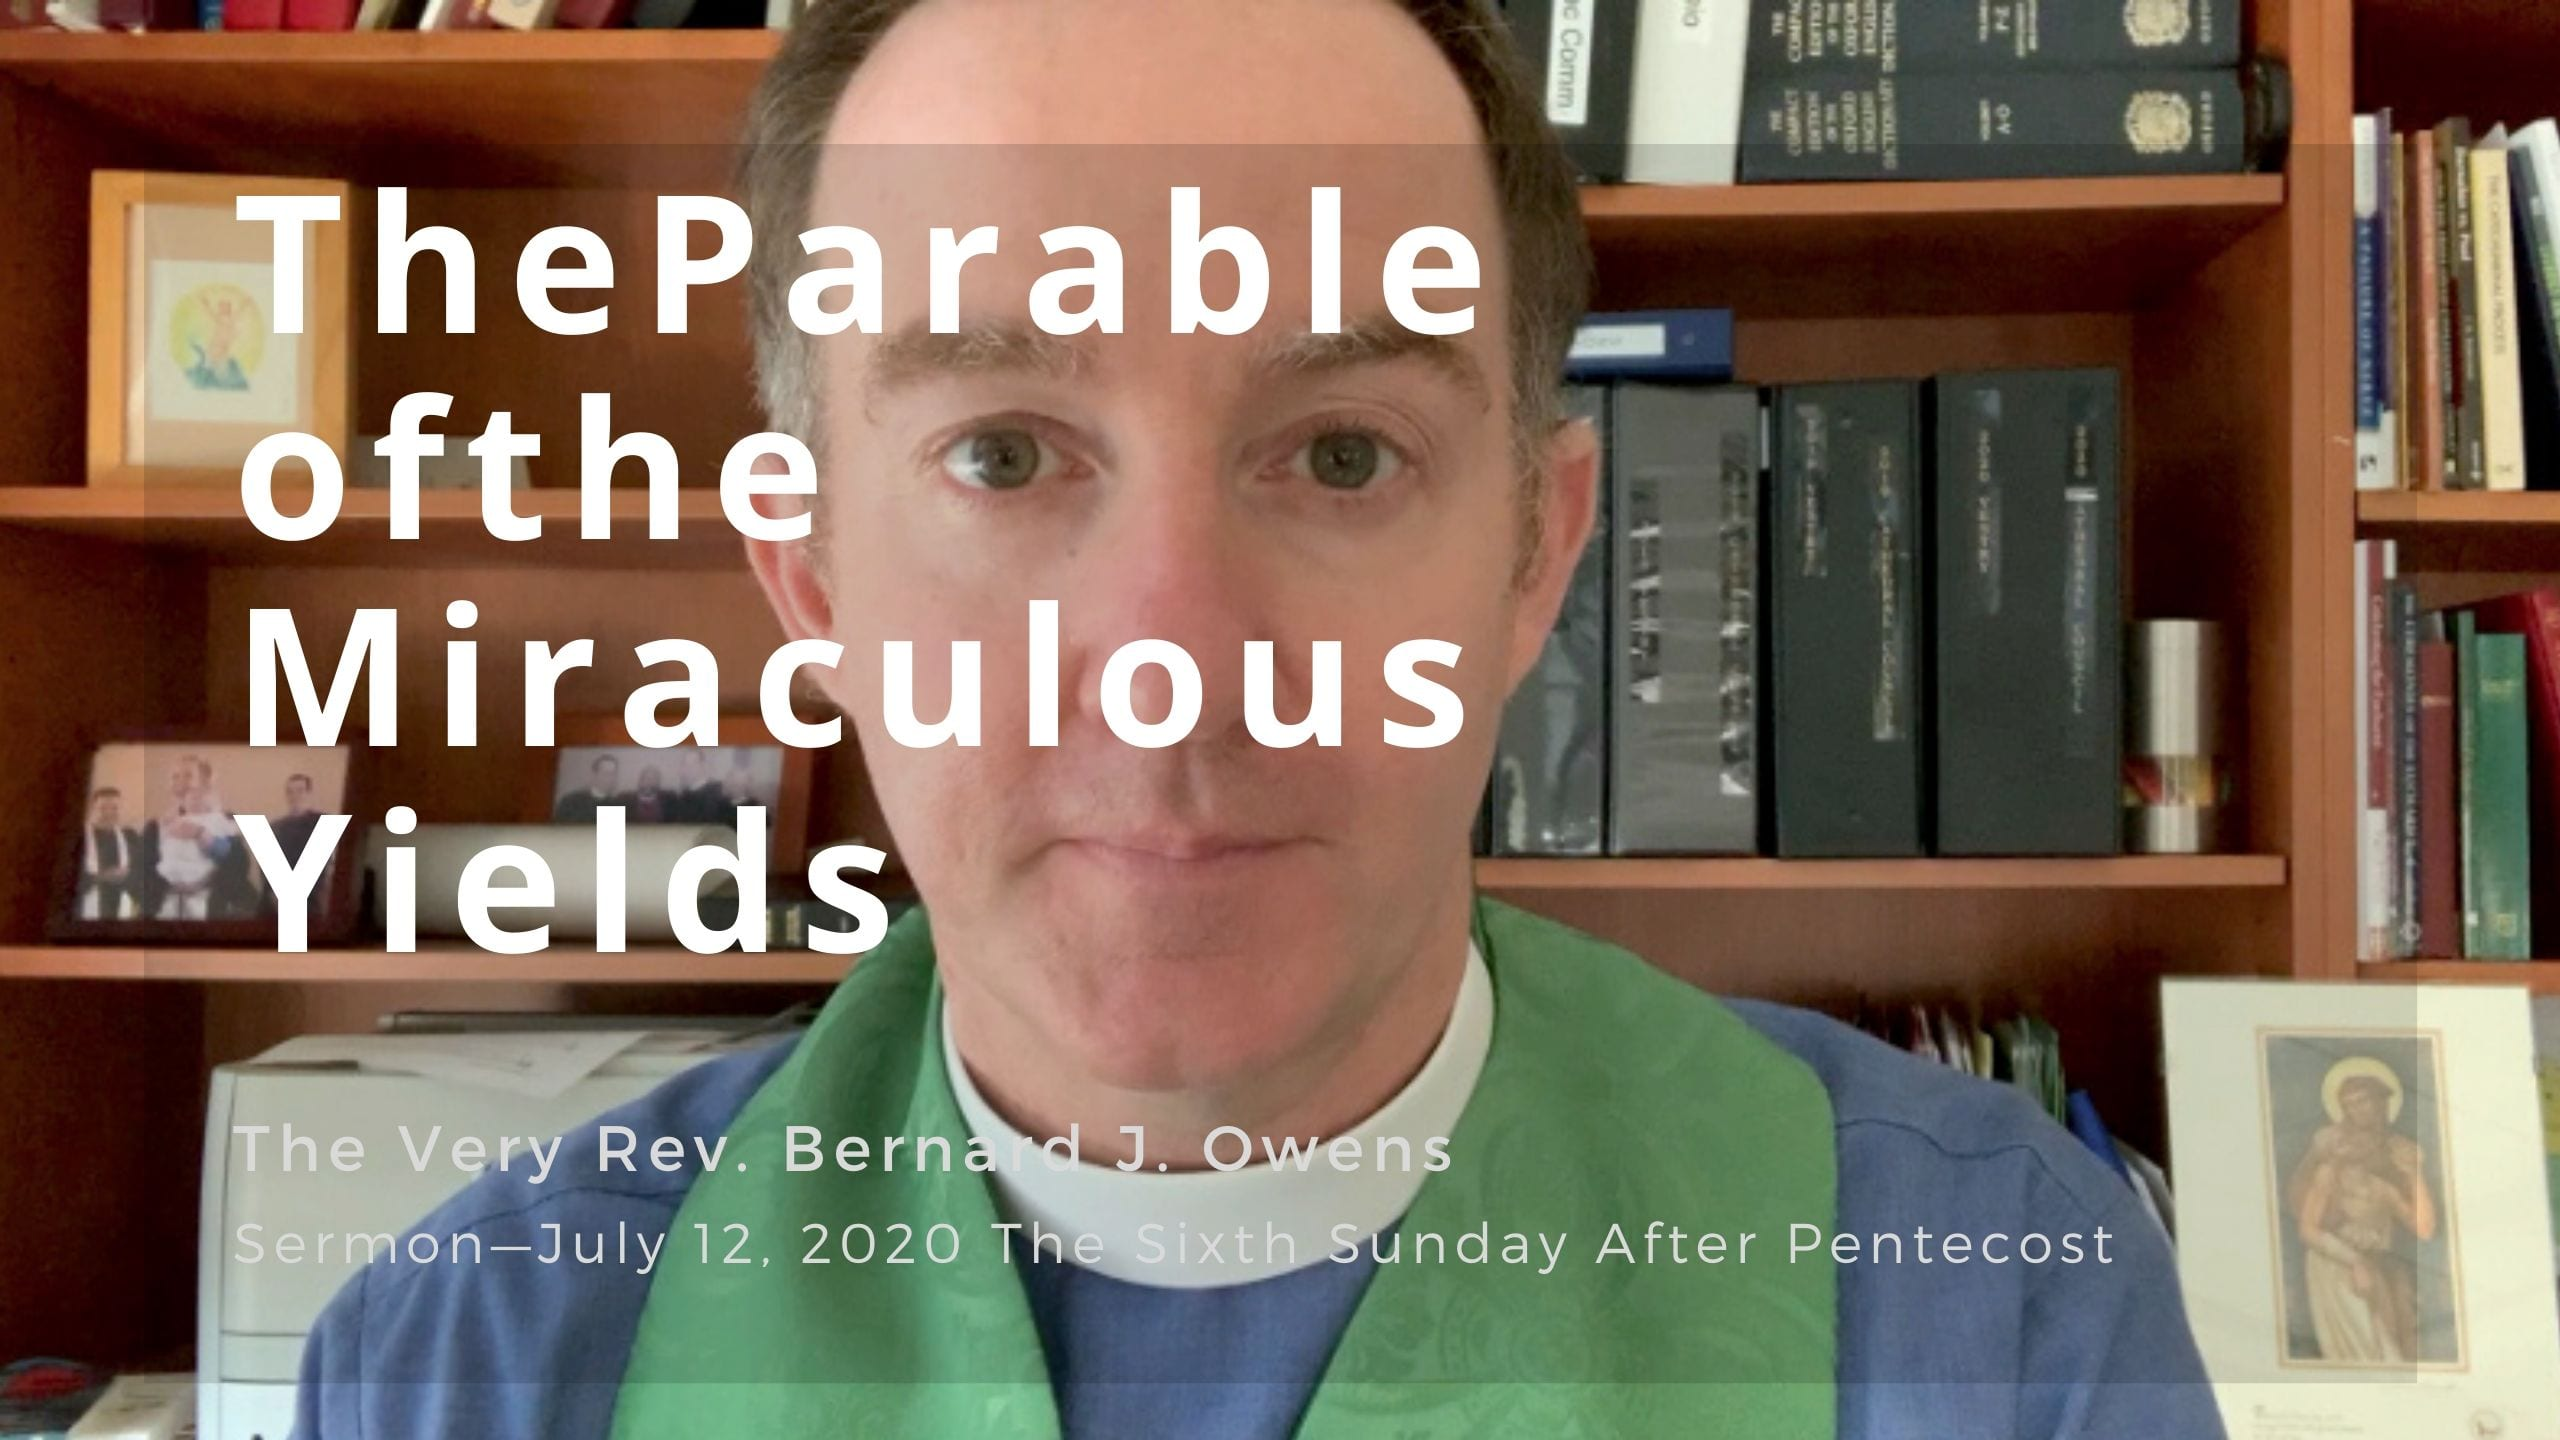 Video Sermon: The Parable of the Miraculous Yields